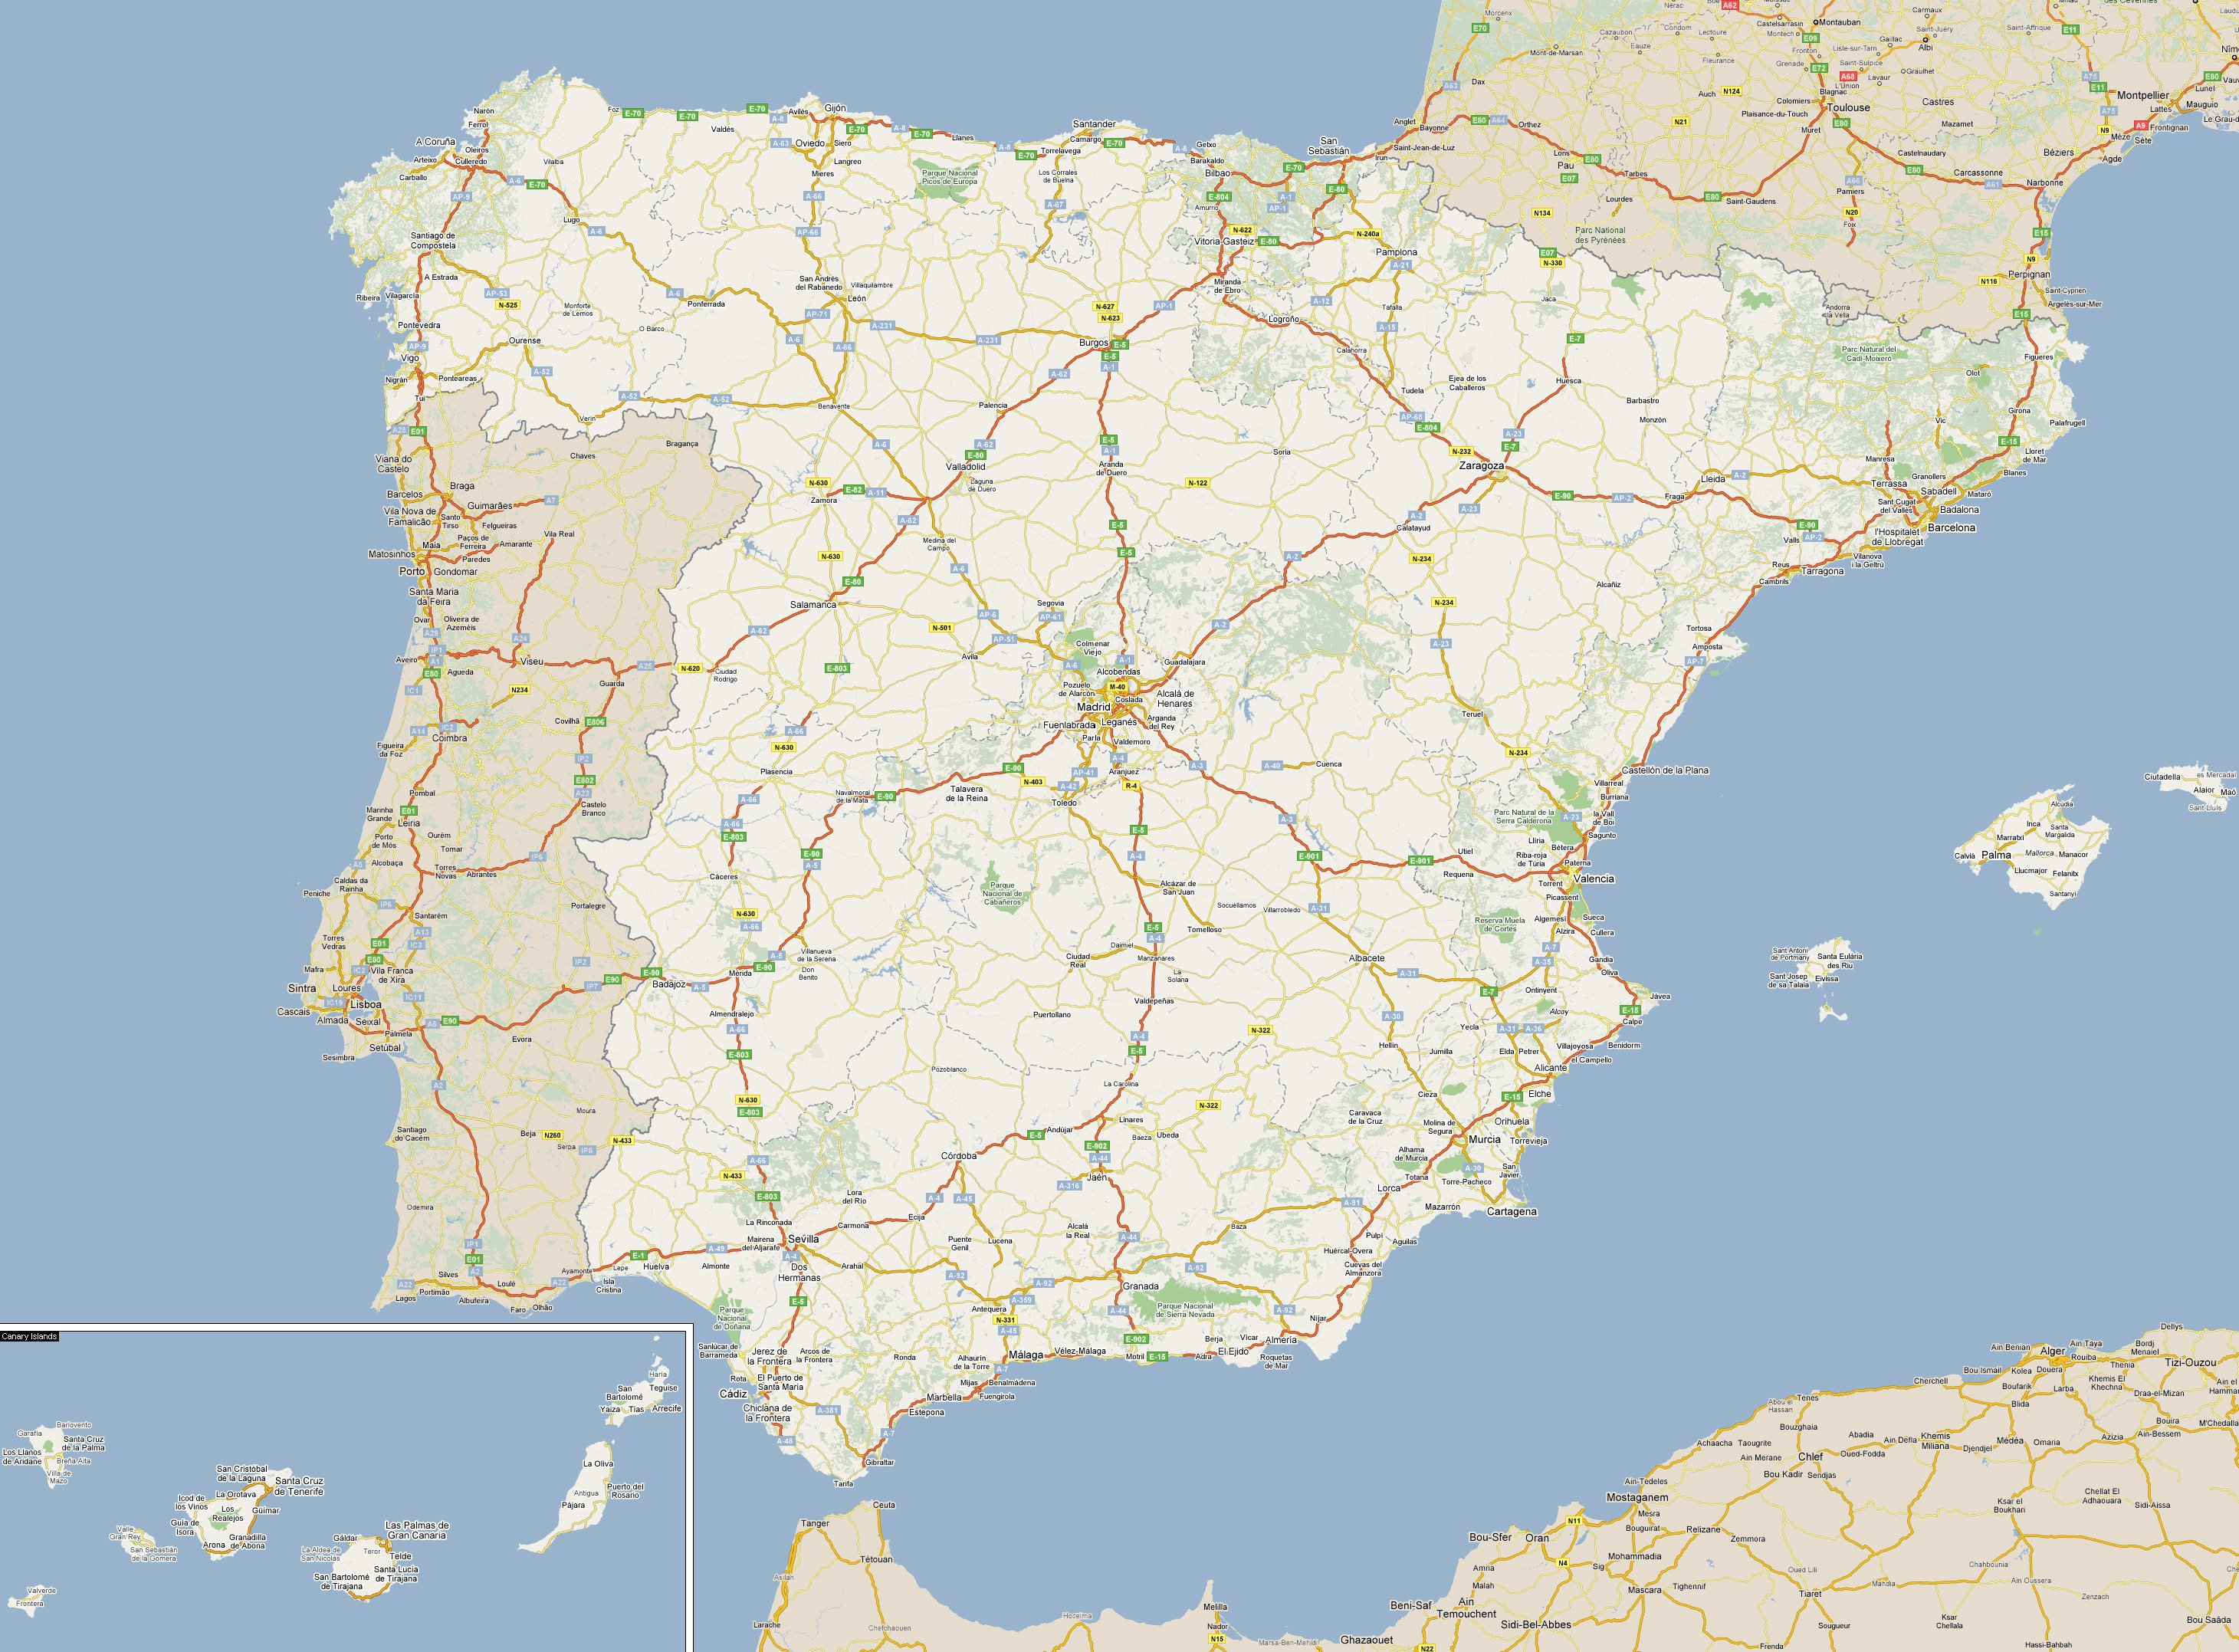 Footiemap.com - Spain ...